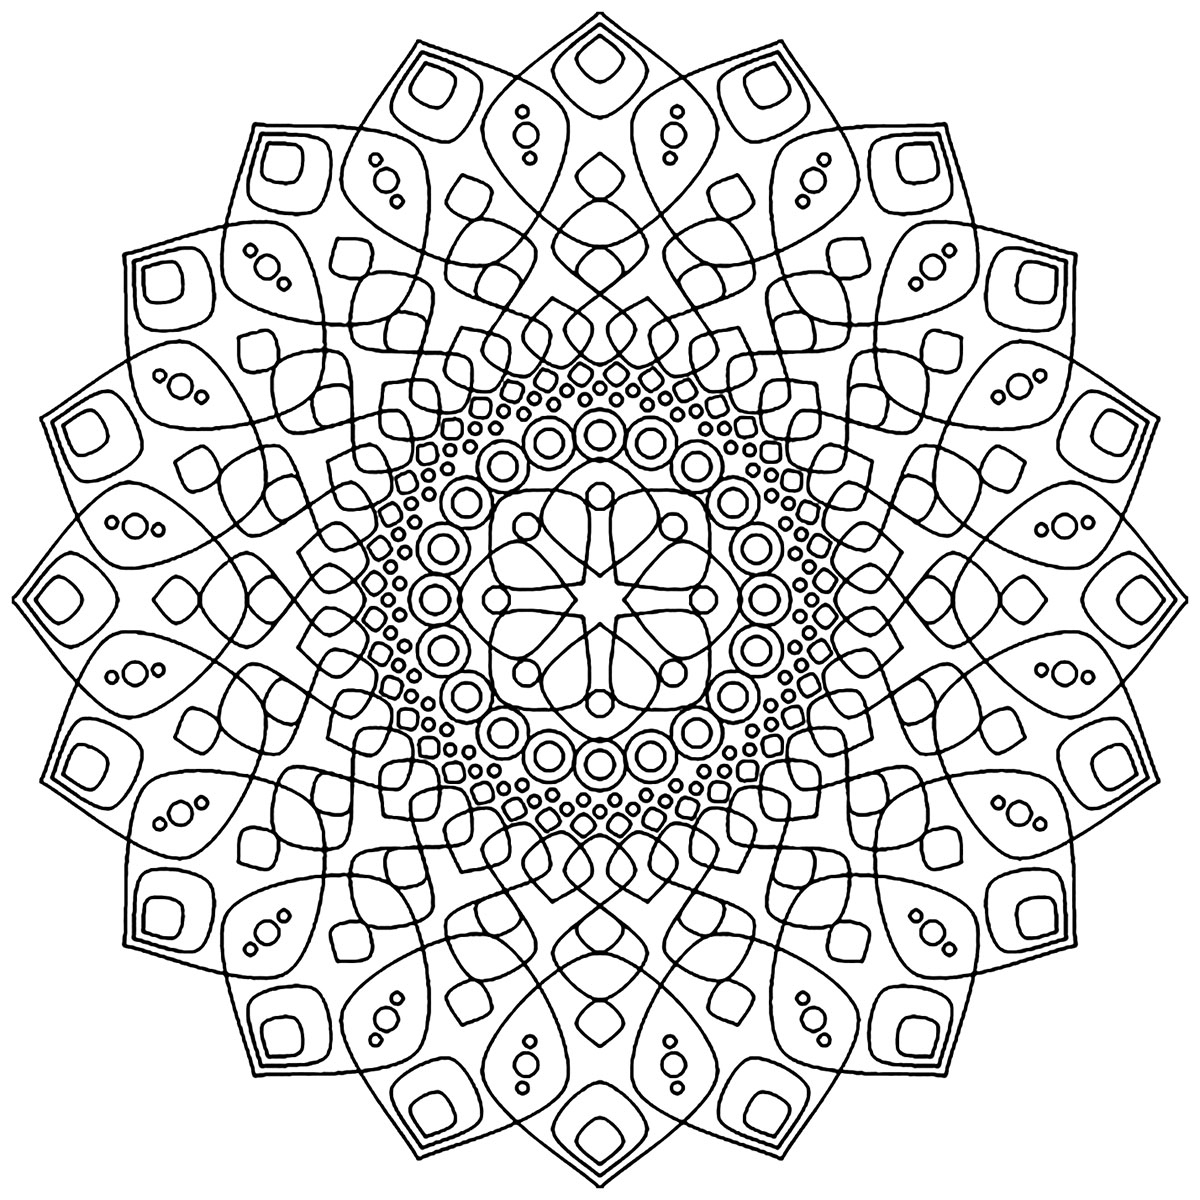 Soothing And Calming Mandala - Simple Mandalas - 100% tout 100 Greatest Mandala Coloring Book: